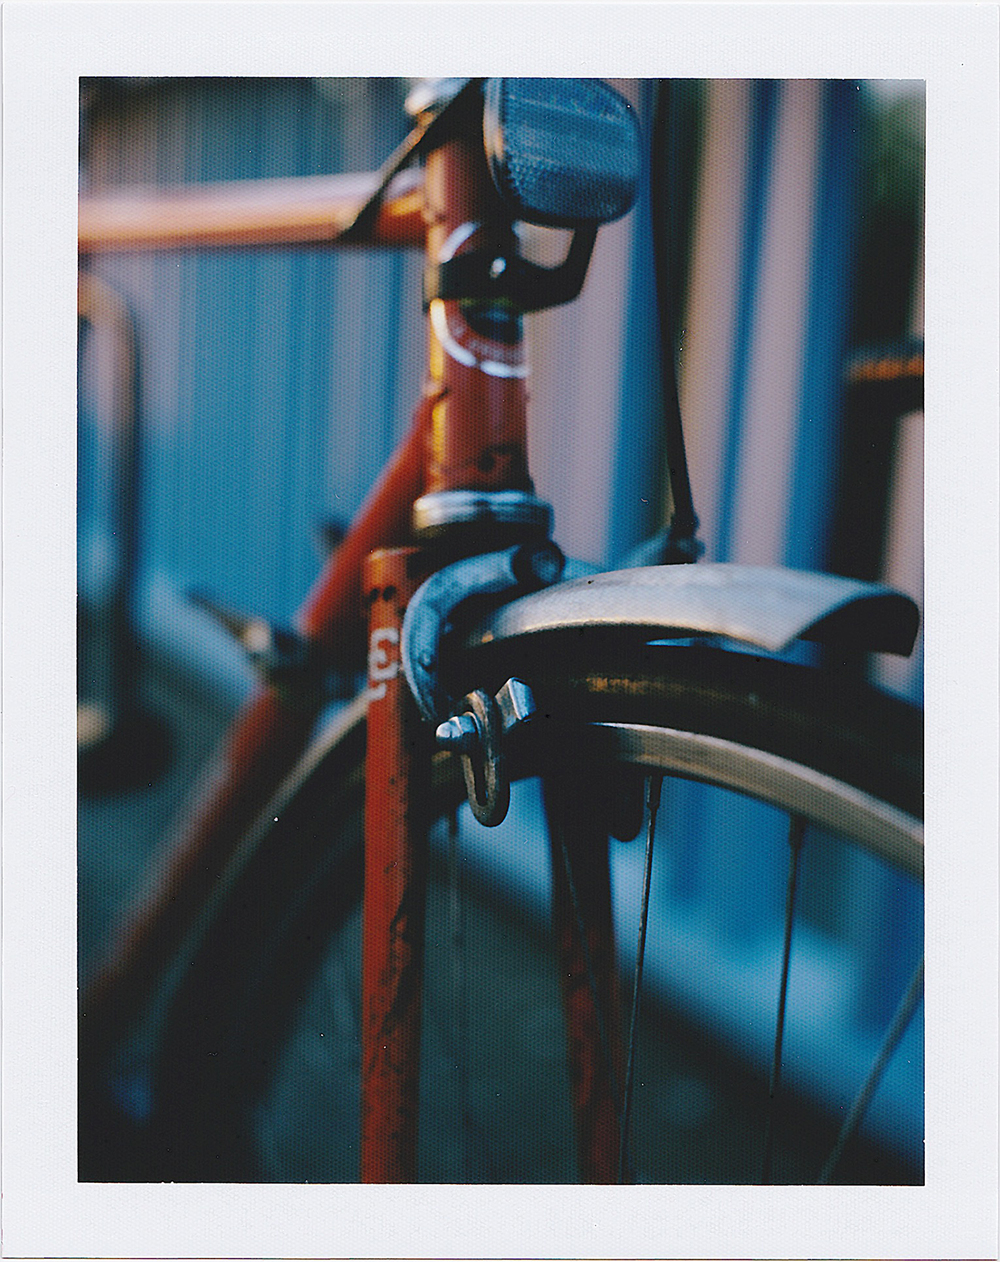 Baldoph Pourprix | Going Home From Work | Homemade Instant Camera - Mamiya Sekor 105mm